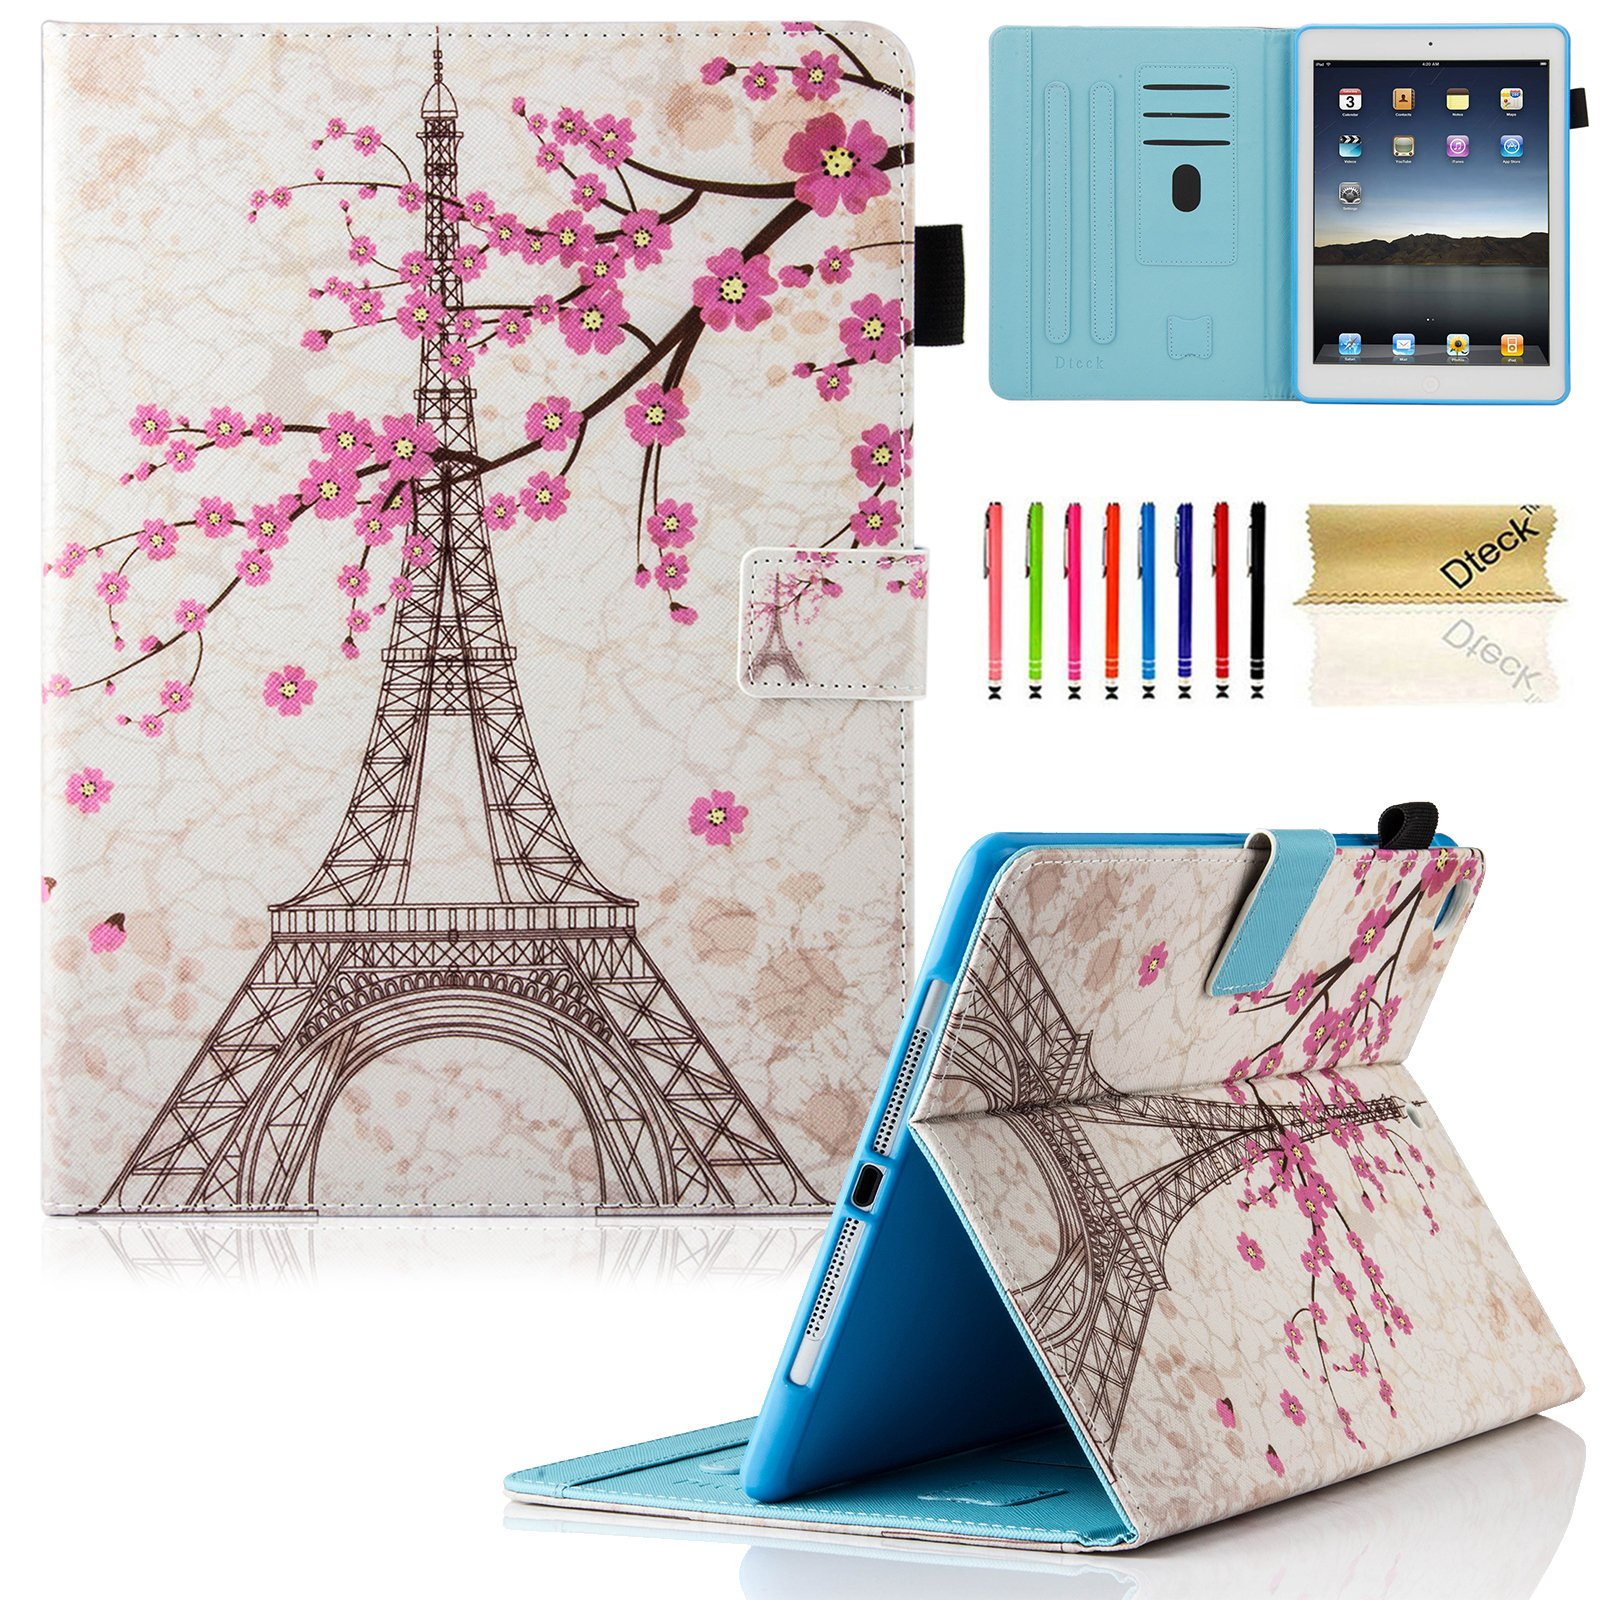 iPad 9.7 inch 2018/2017 Case, iPad Air Case, iPad Air 2 Case, Dteck PU Leather Folio Smart Cover Stand Wallet Case with Auto Sleep Wake for Apple iPad 6th/5th Gen,iPad Air 1, iPad Air 2, Eiffel Tower